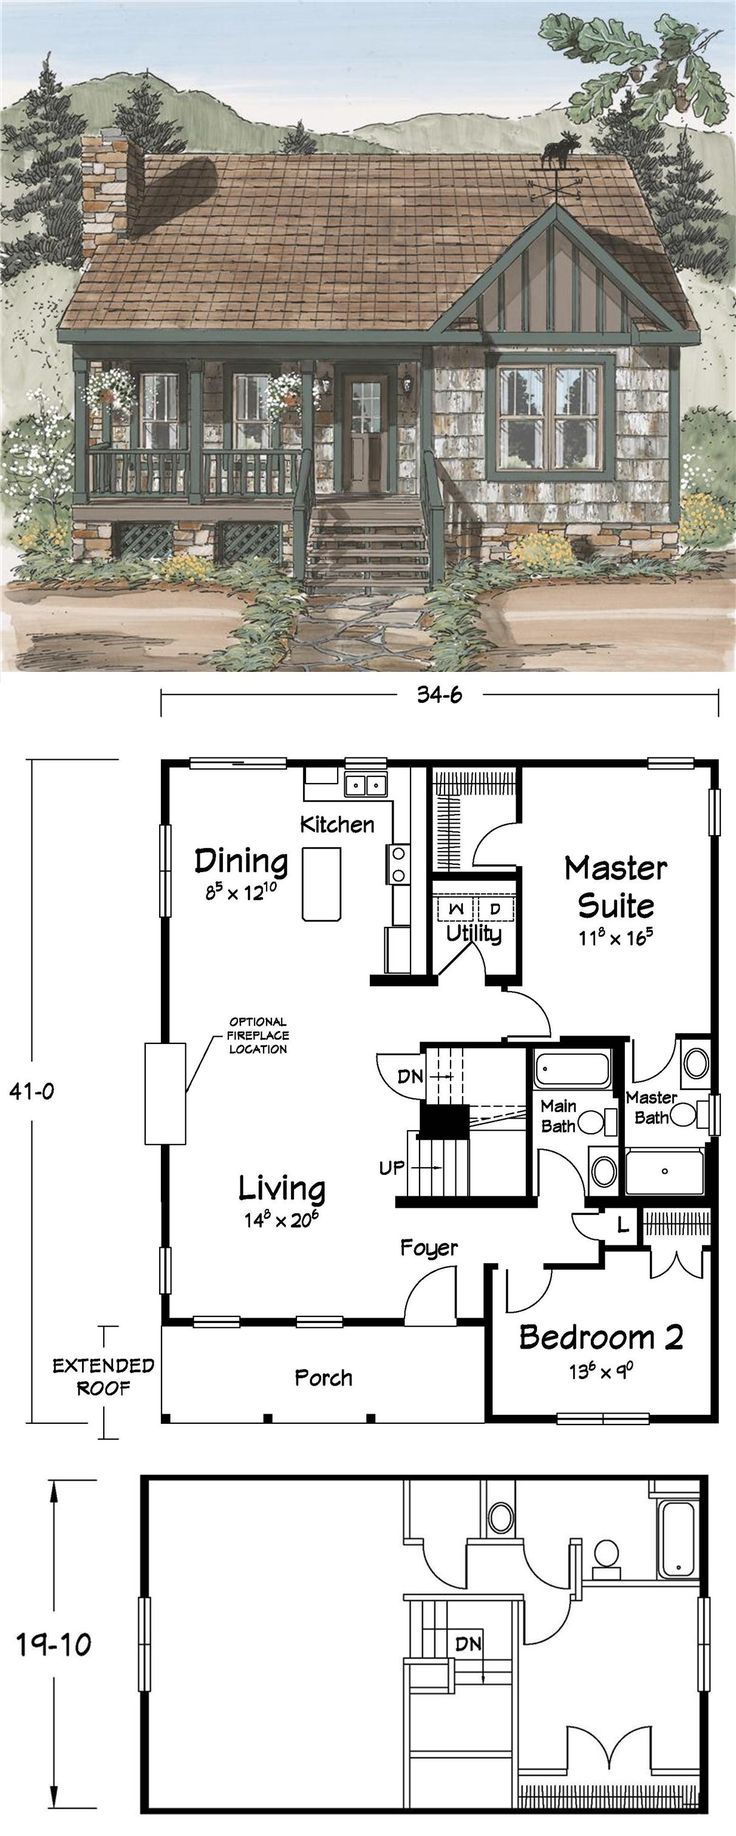 Cute floor plans tiny homes pinterest cabin small for Cabin home floor plans